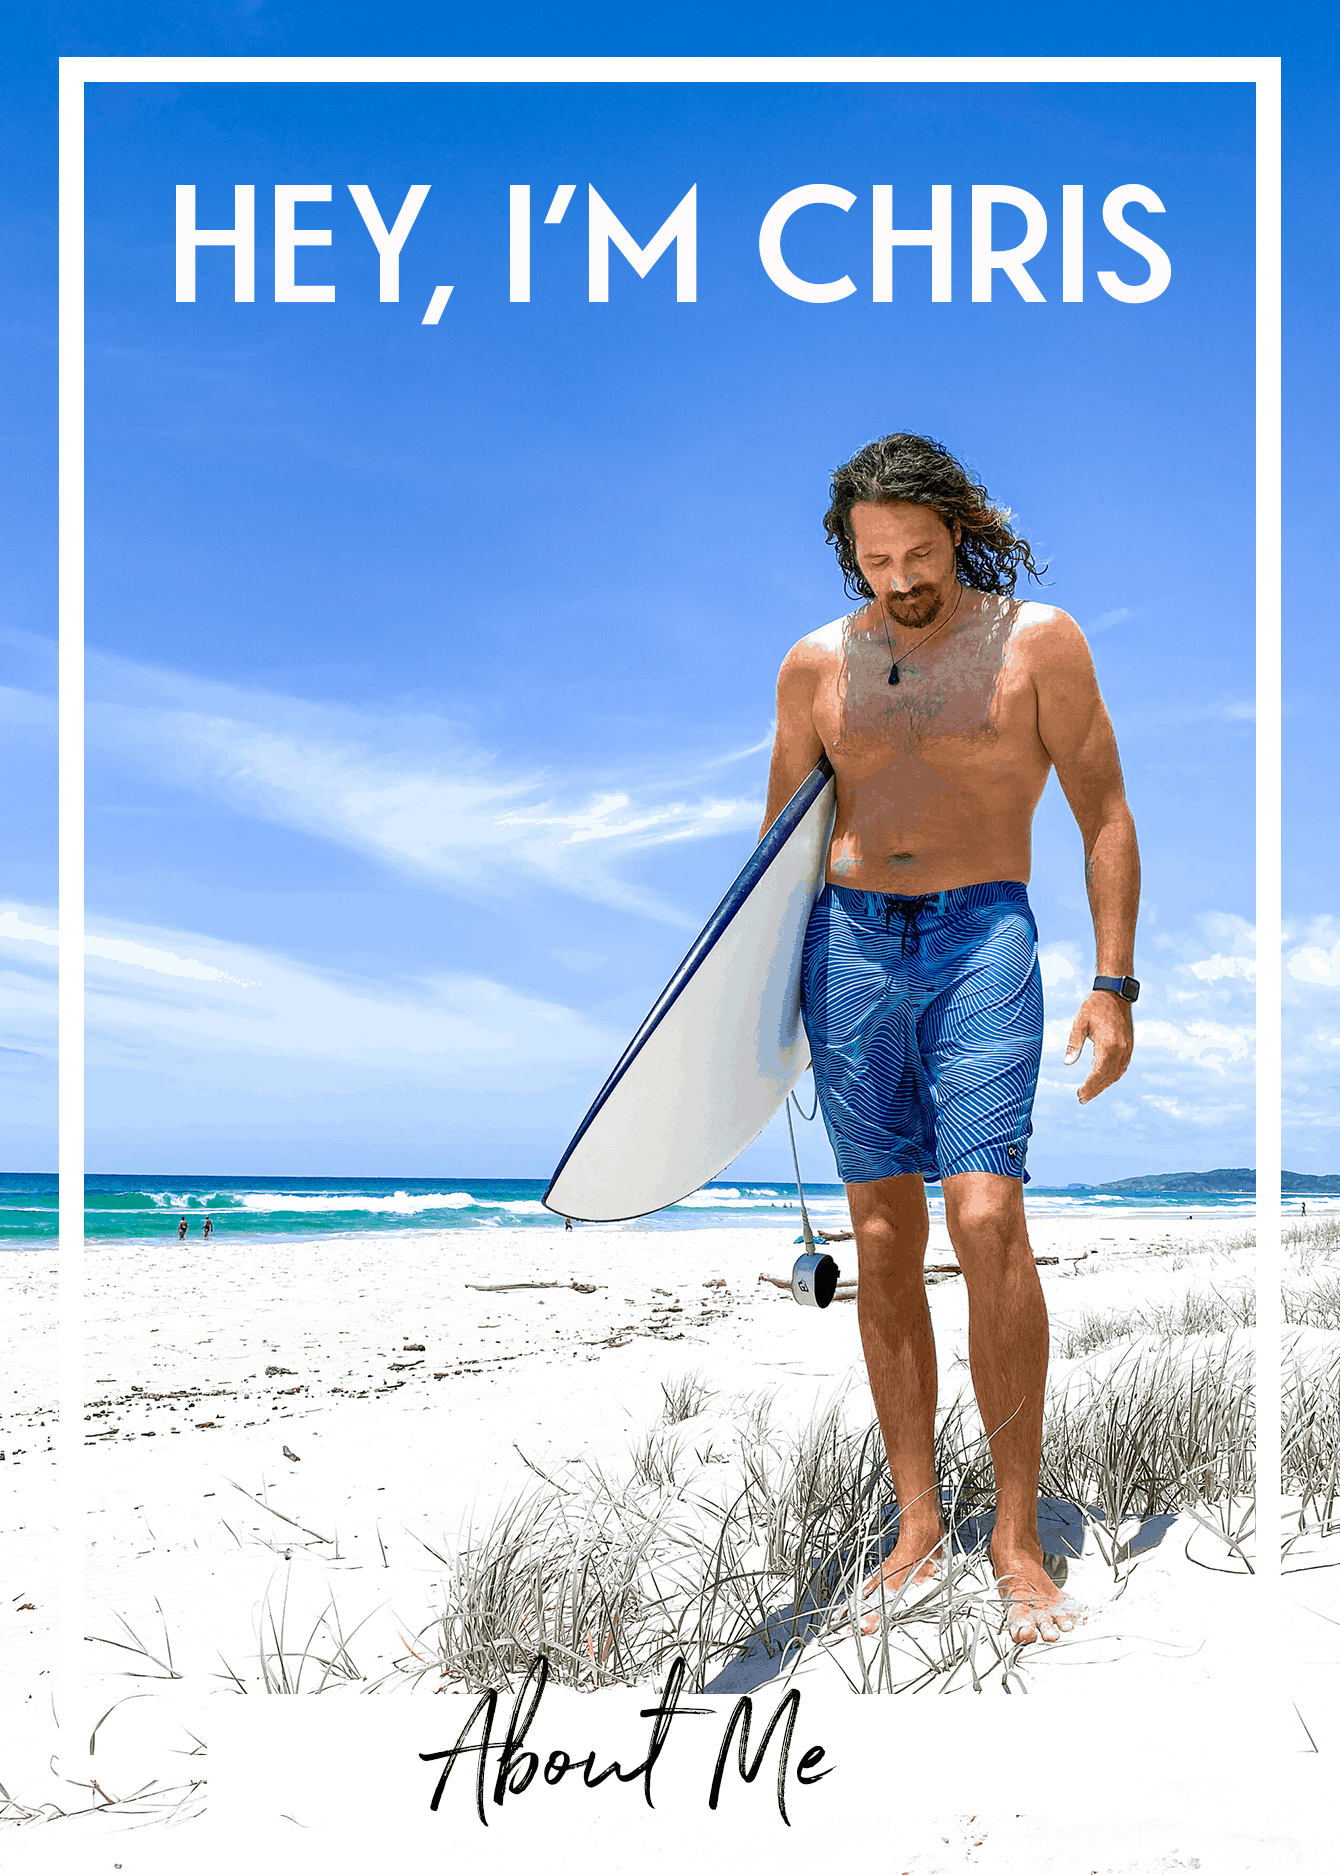 chris stevens stoked for travel blogger surf